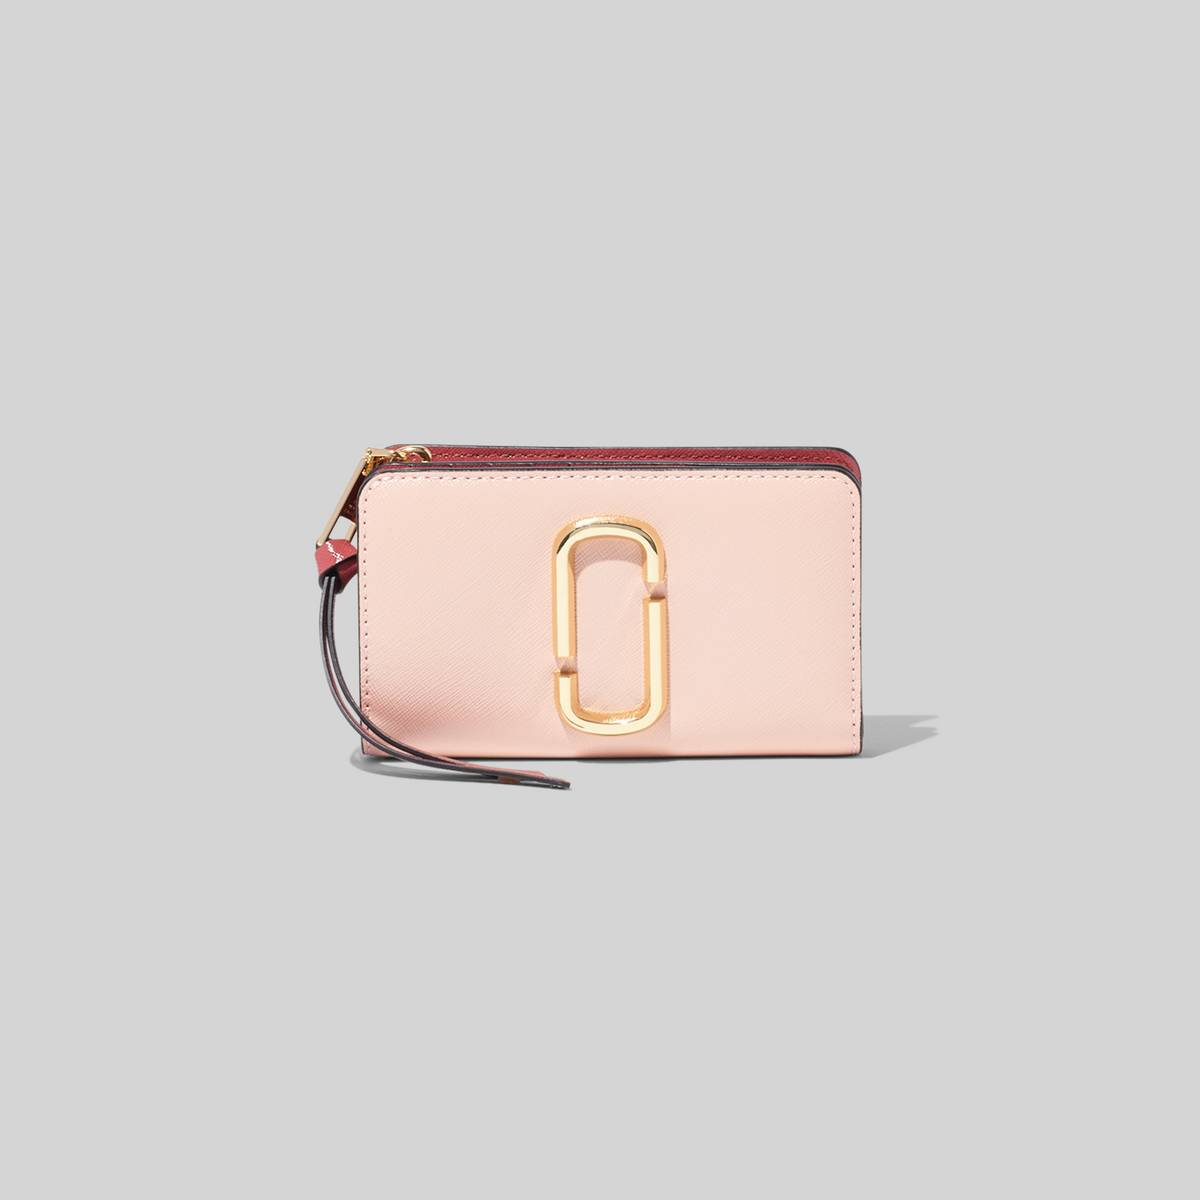 Small leather wallet with Double-J hardware. | MARC JACOBS Women\\'s The Snapshot Compact Wallet in New Rose Multi